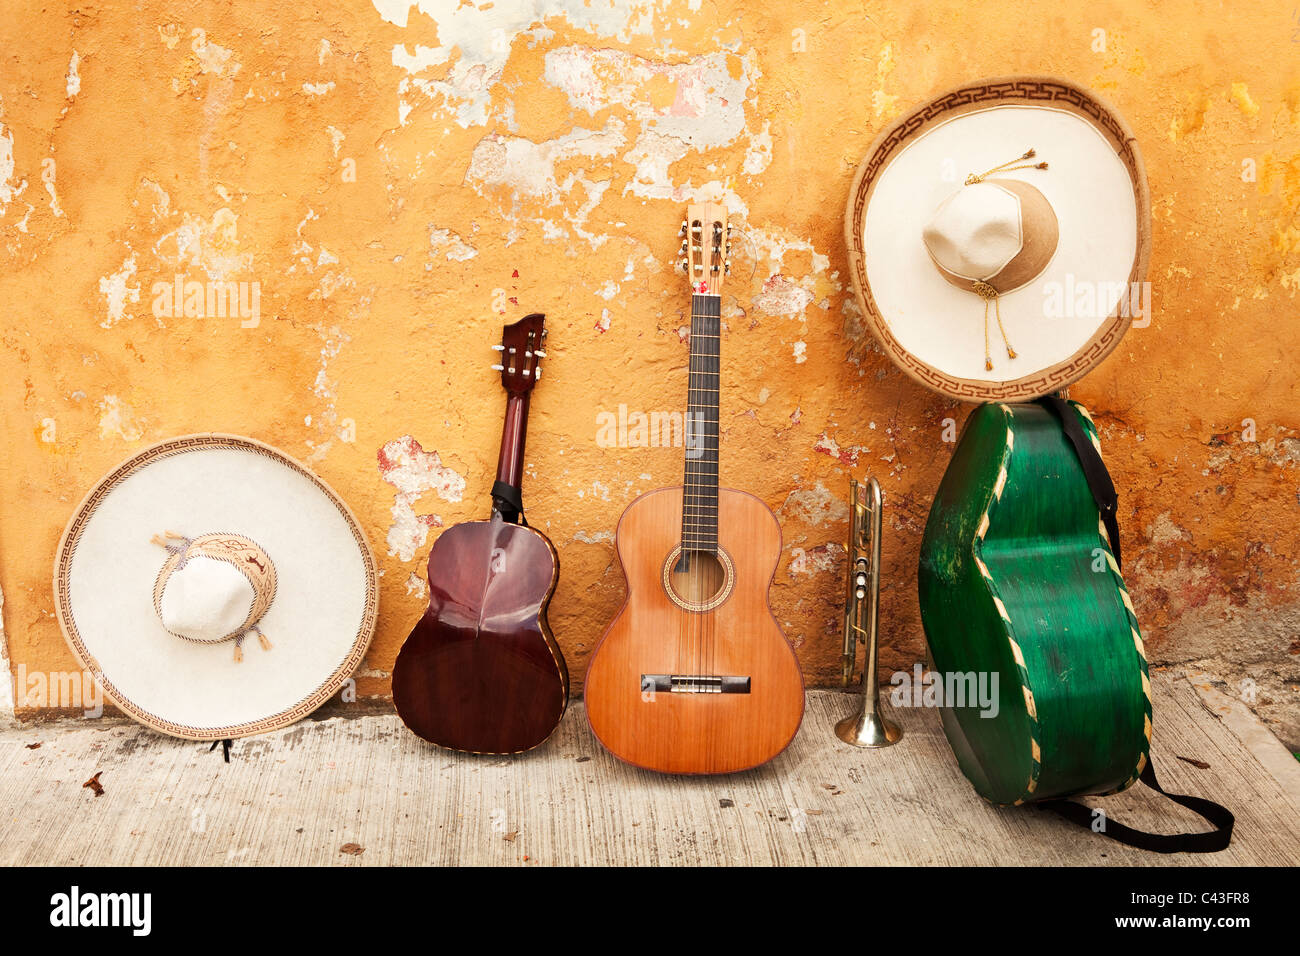 Mexican instruments and sombreros. - Stock Image